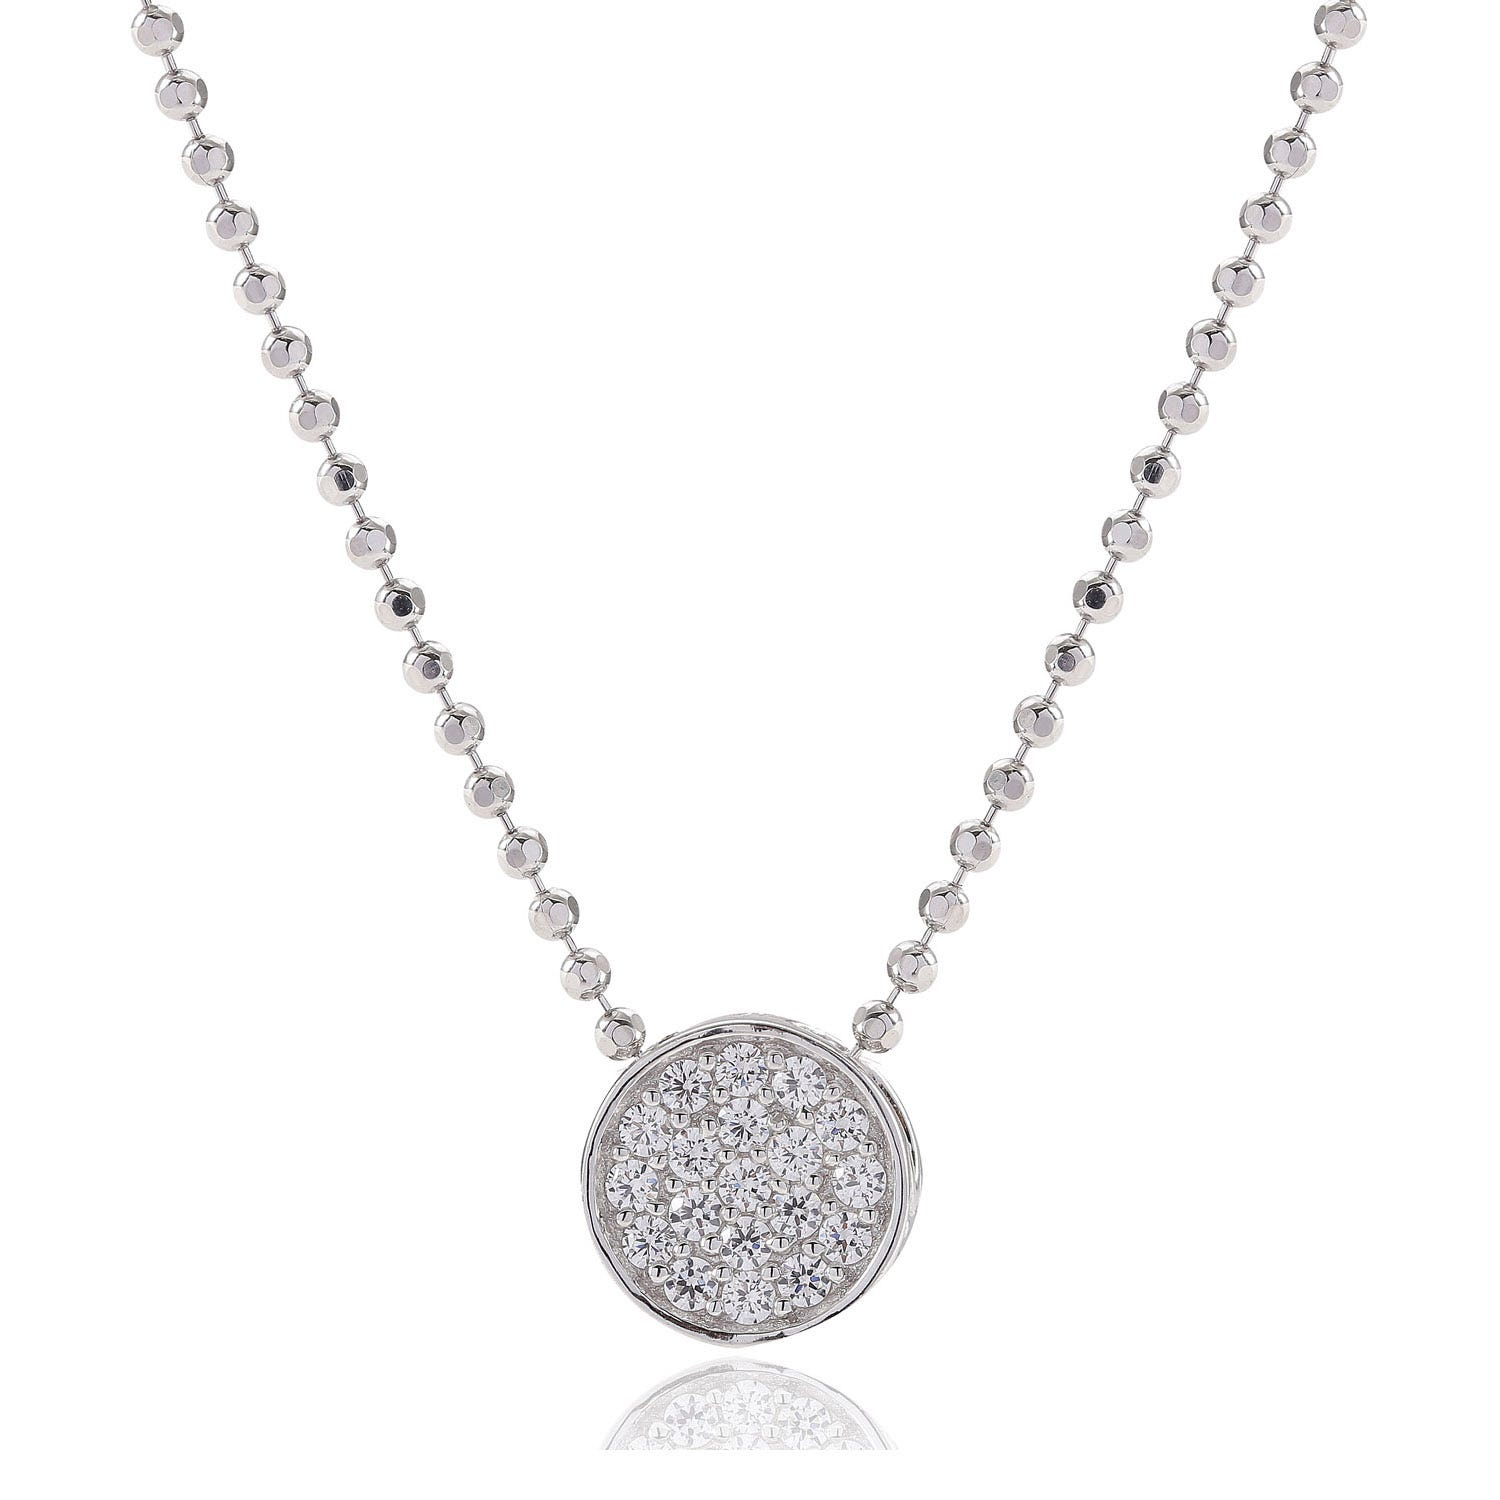 Sif Jakobs Portici Rose Gold Plated Cubic Zirconia Pendant